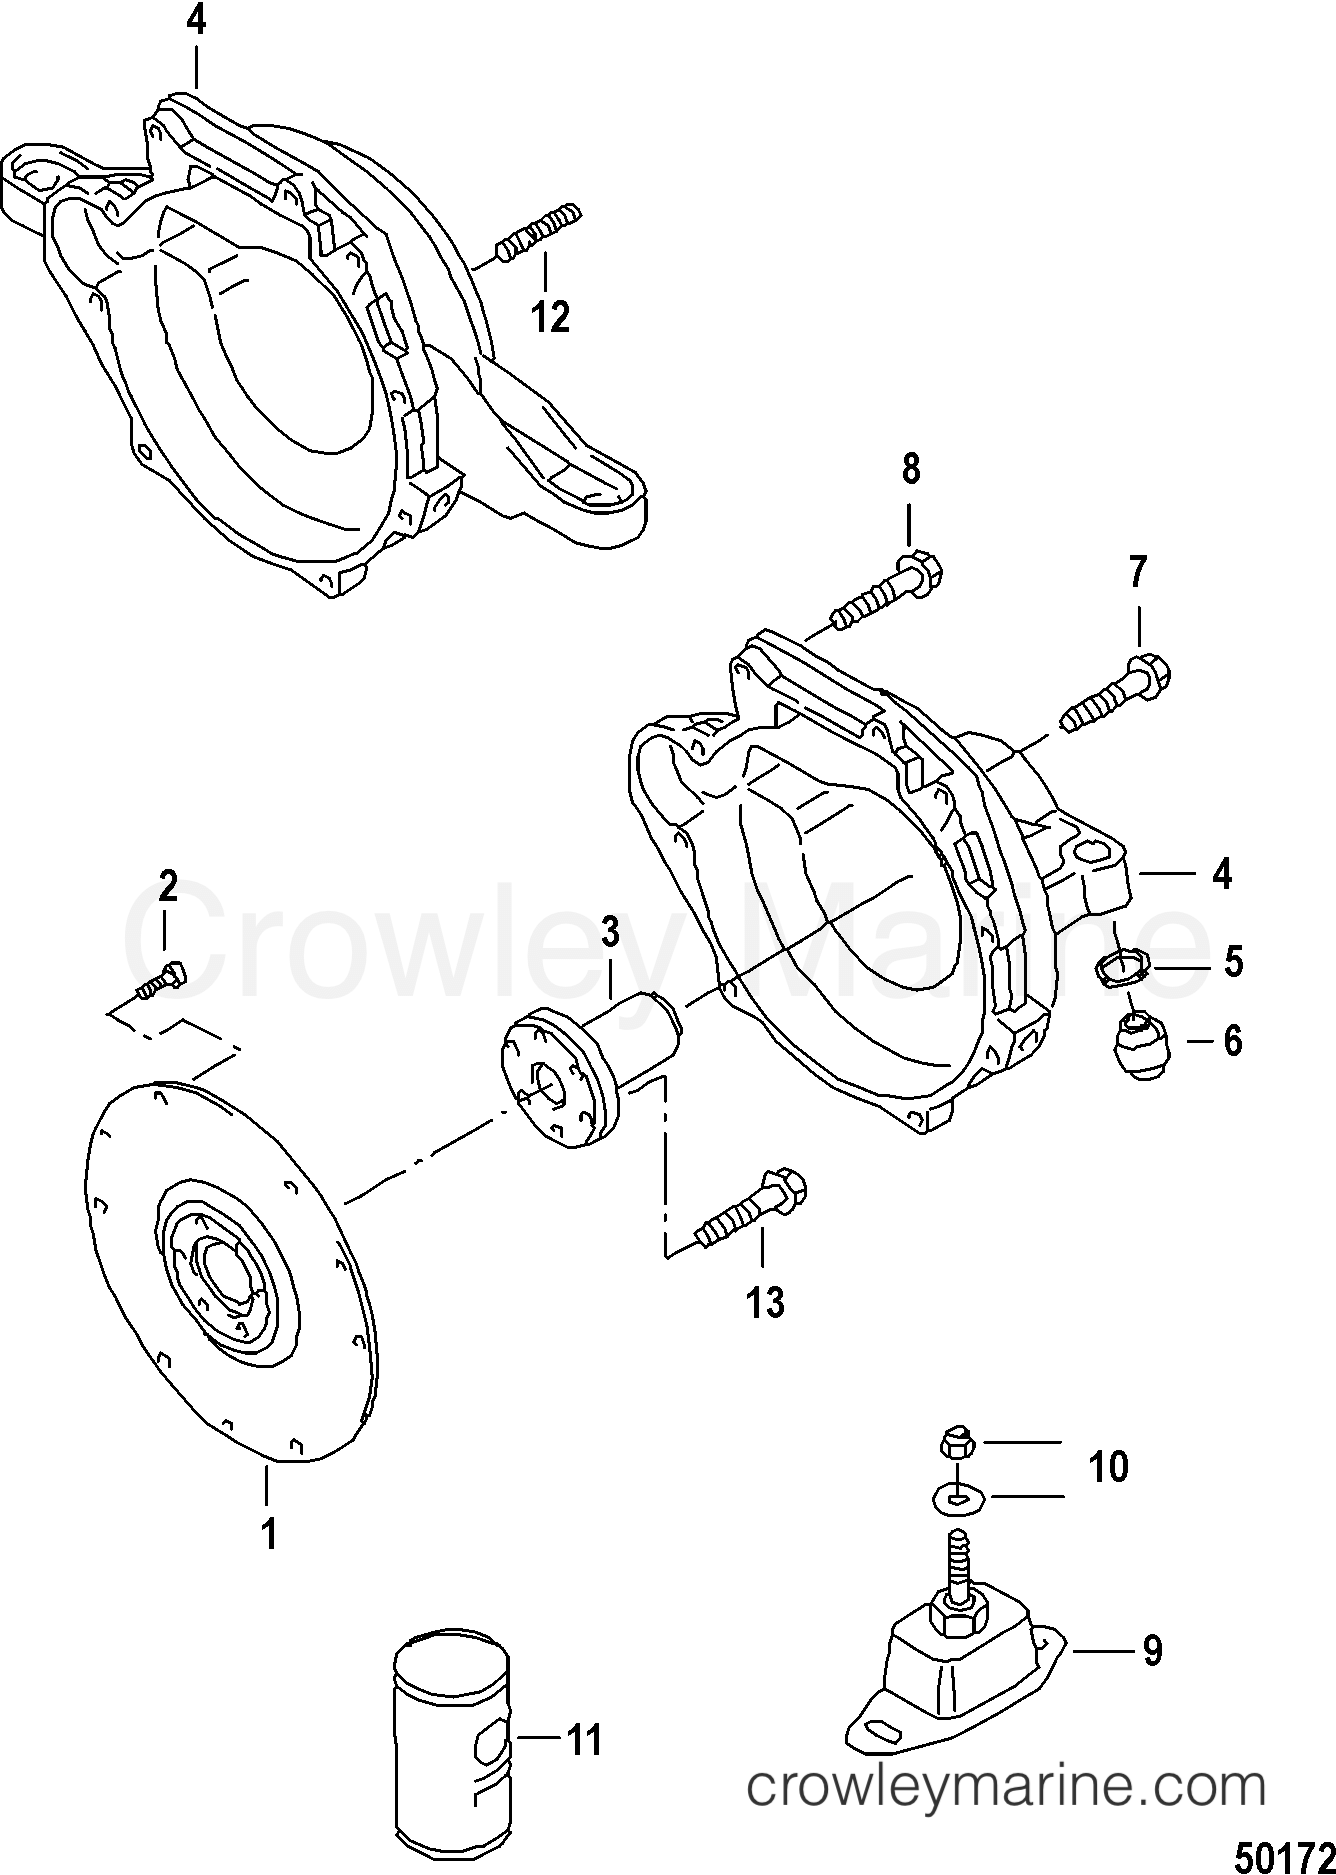 clutch housing  fixture washer